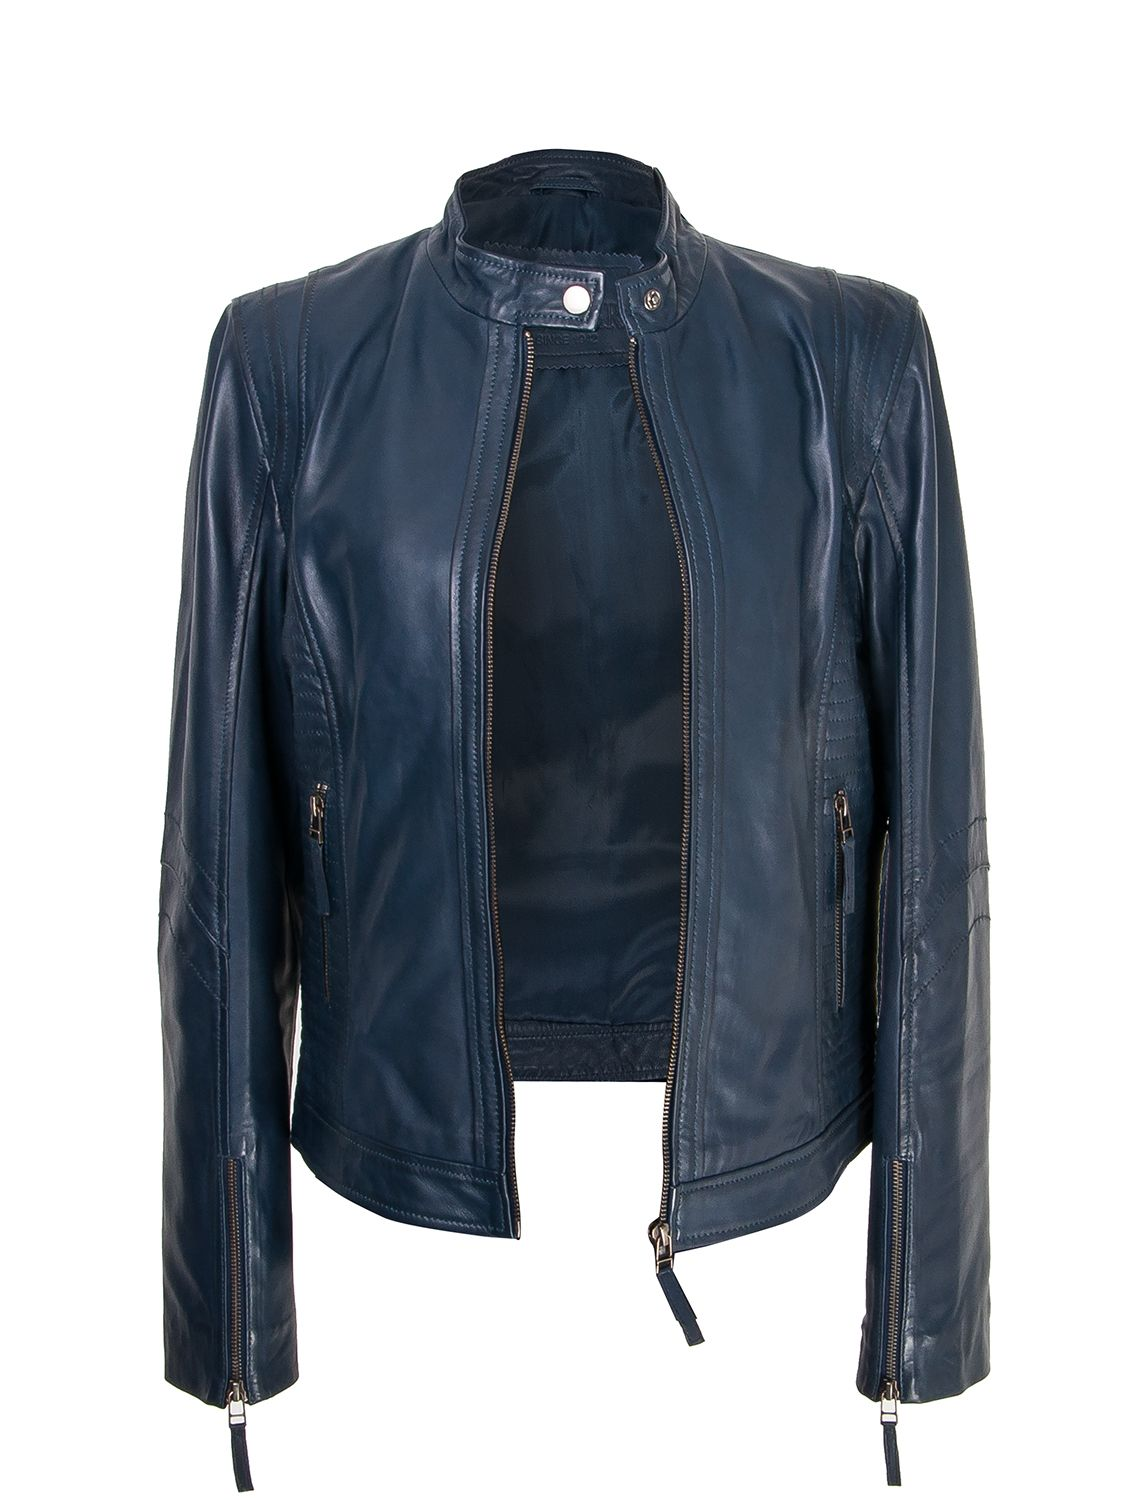 881b8777ee50c Navy Blue Leather jacket . Zerimar Spain Chaqueta piel azul marino ...